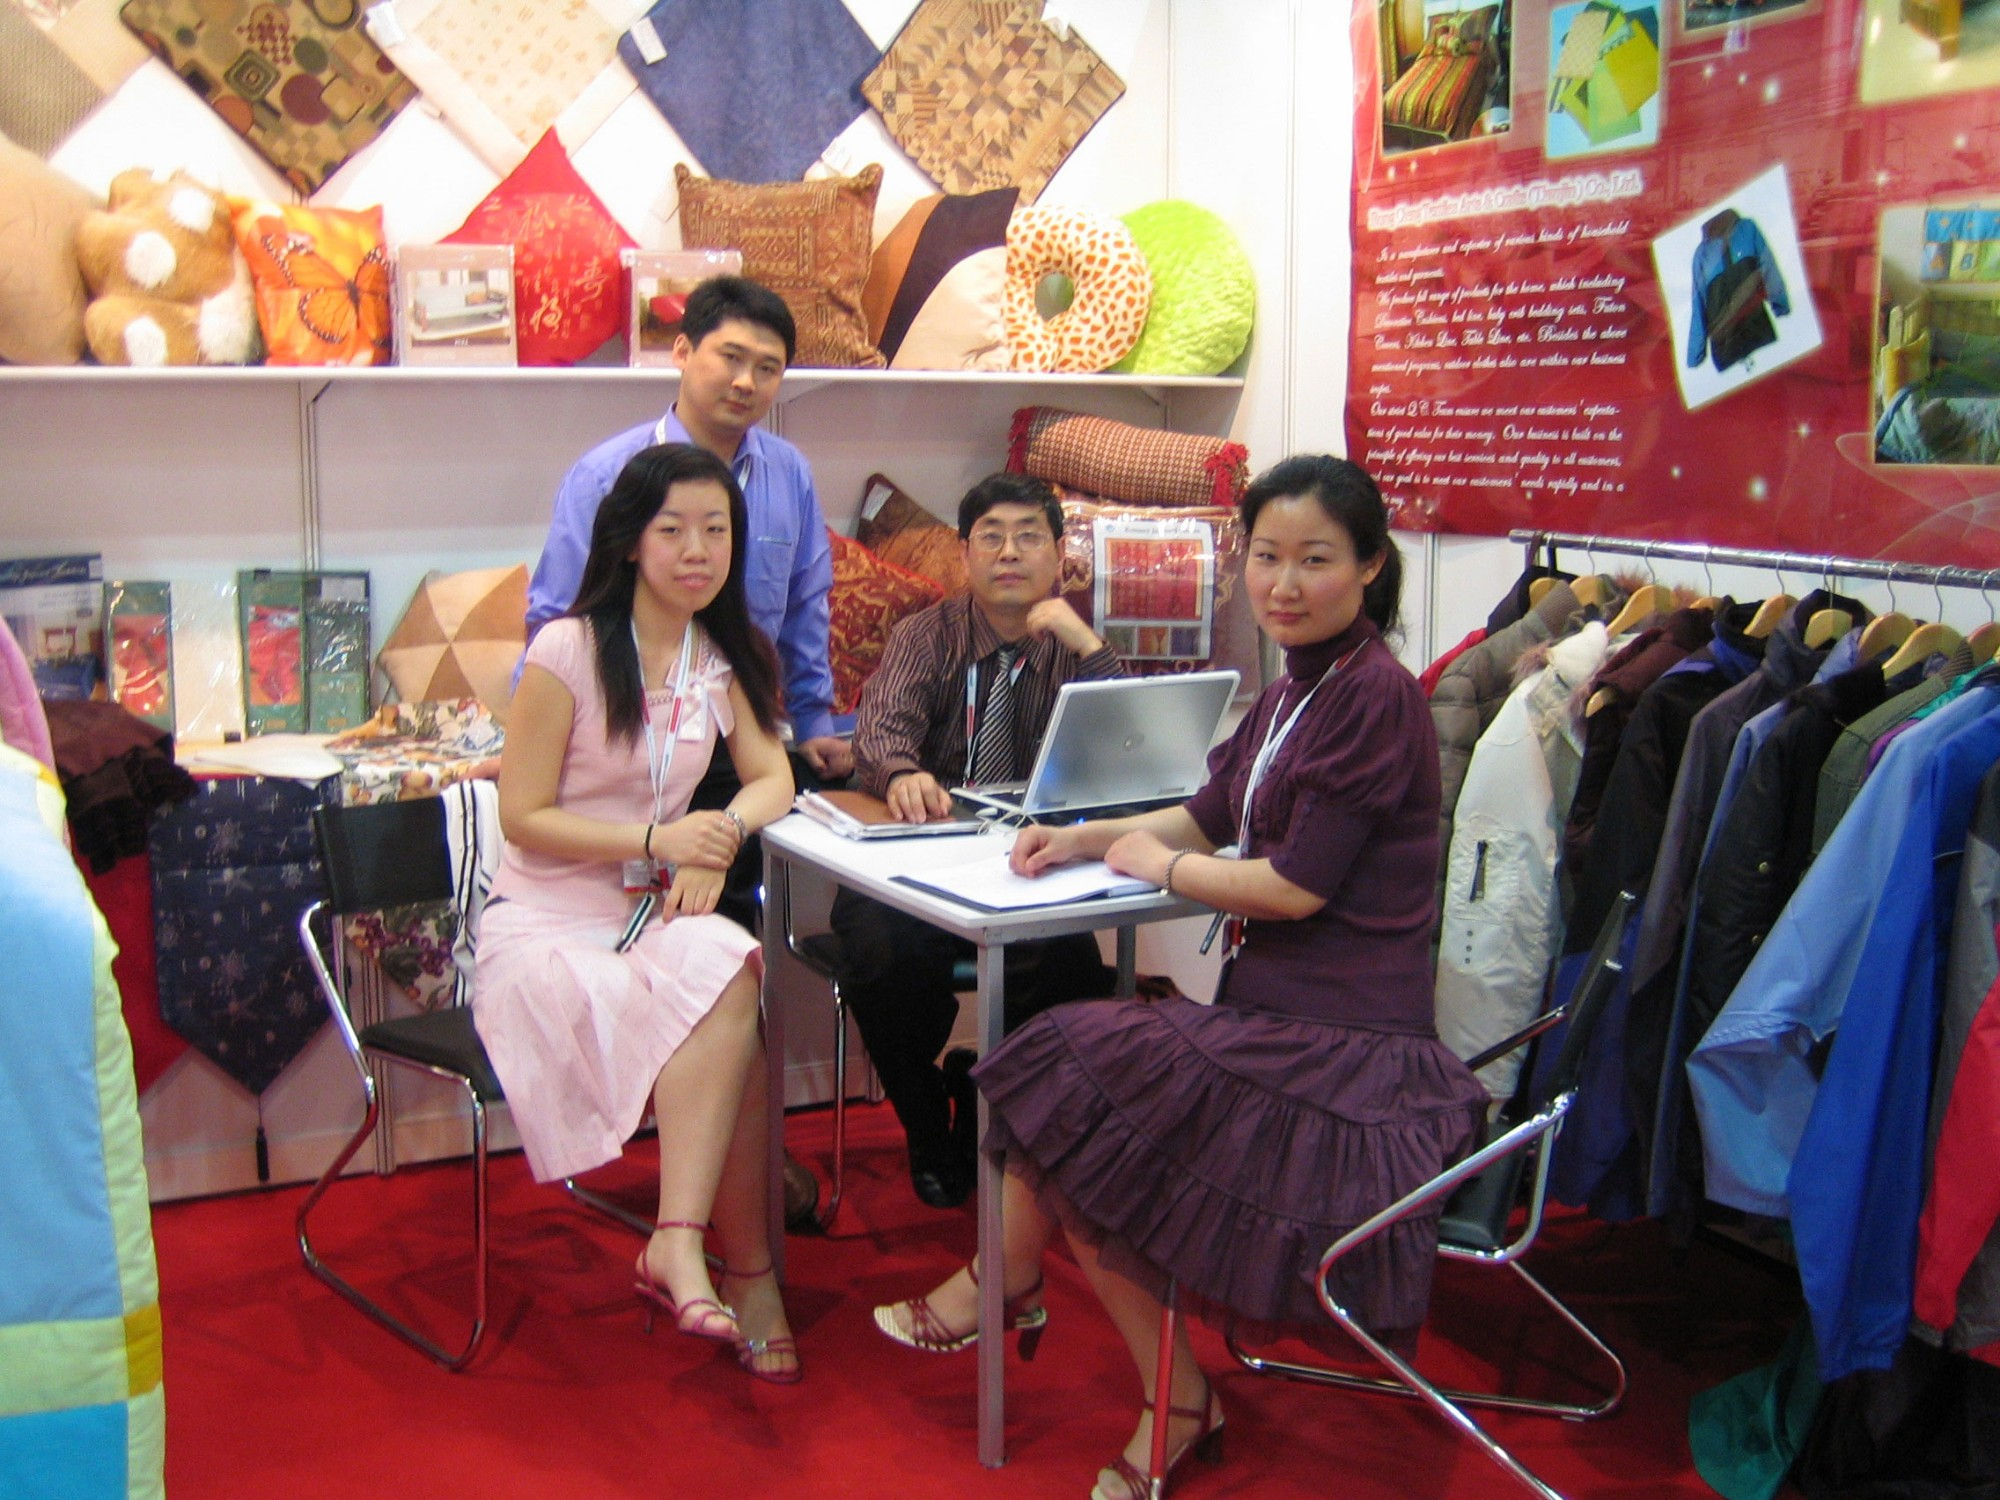 International textile and clothing show in Las Vegas, USA